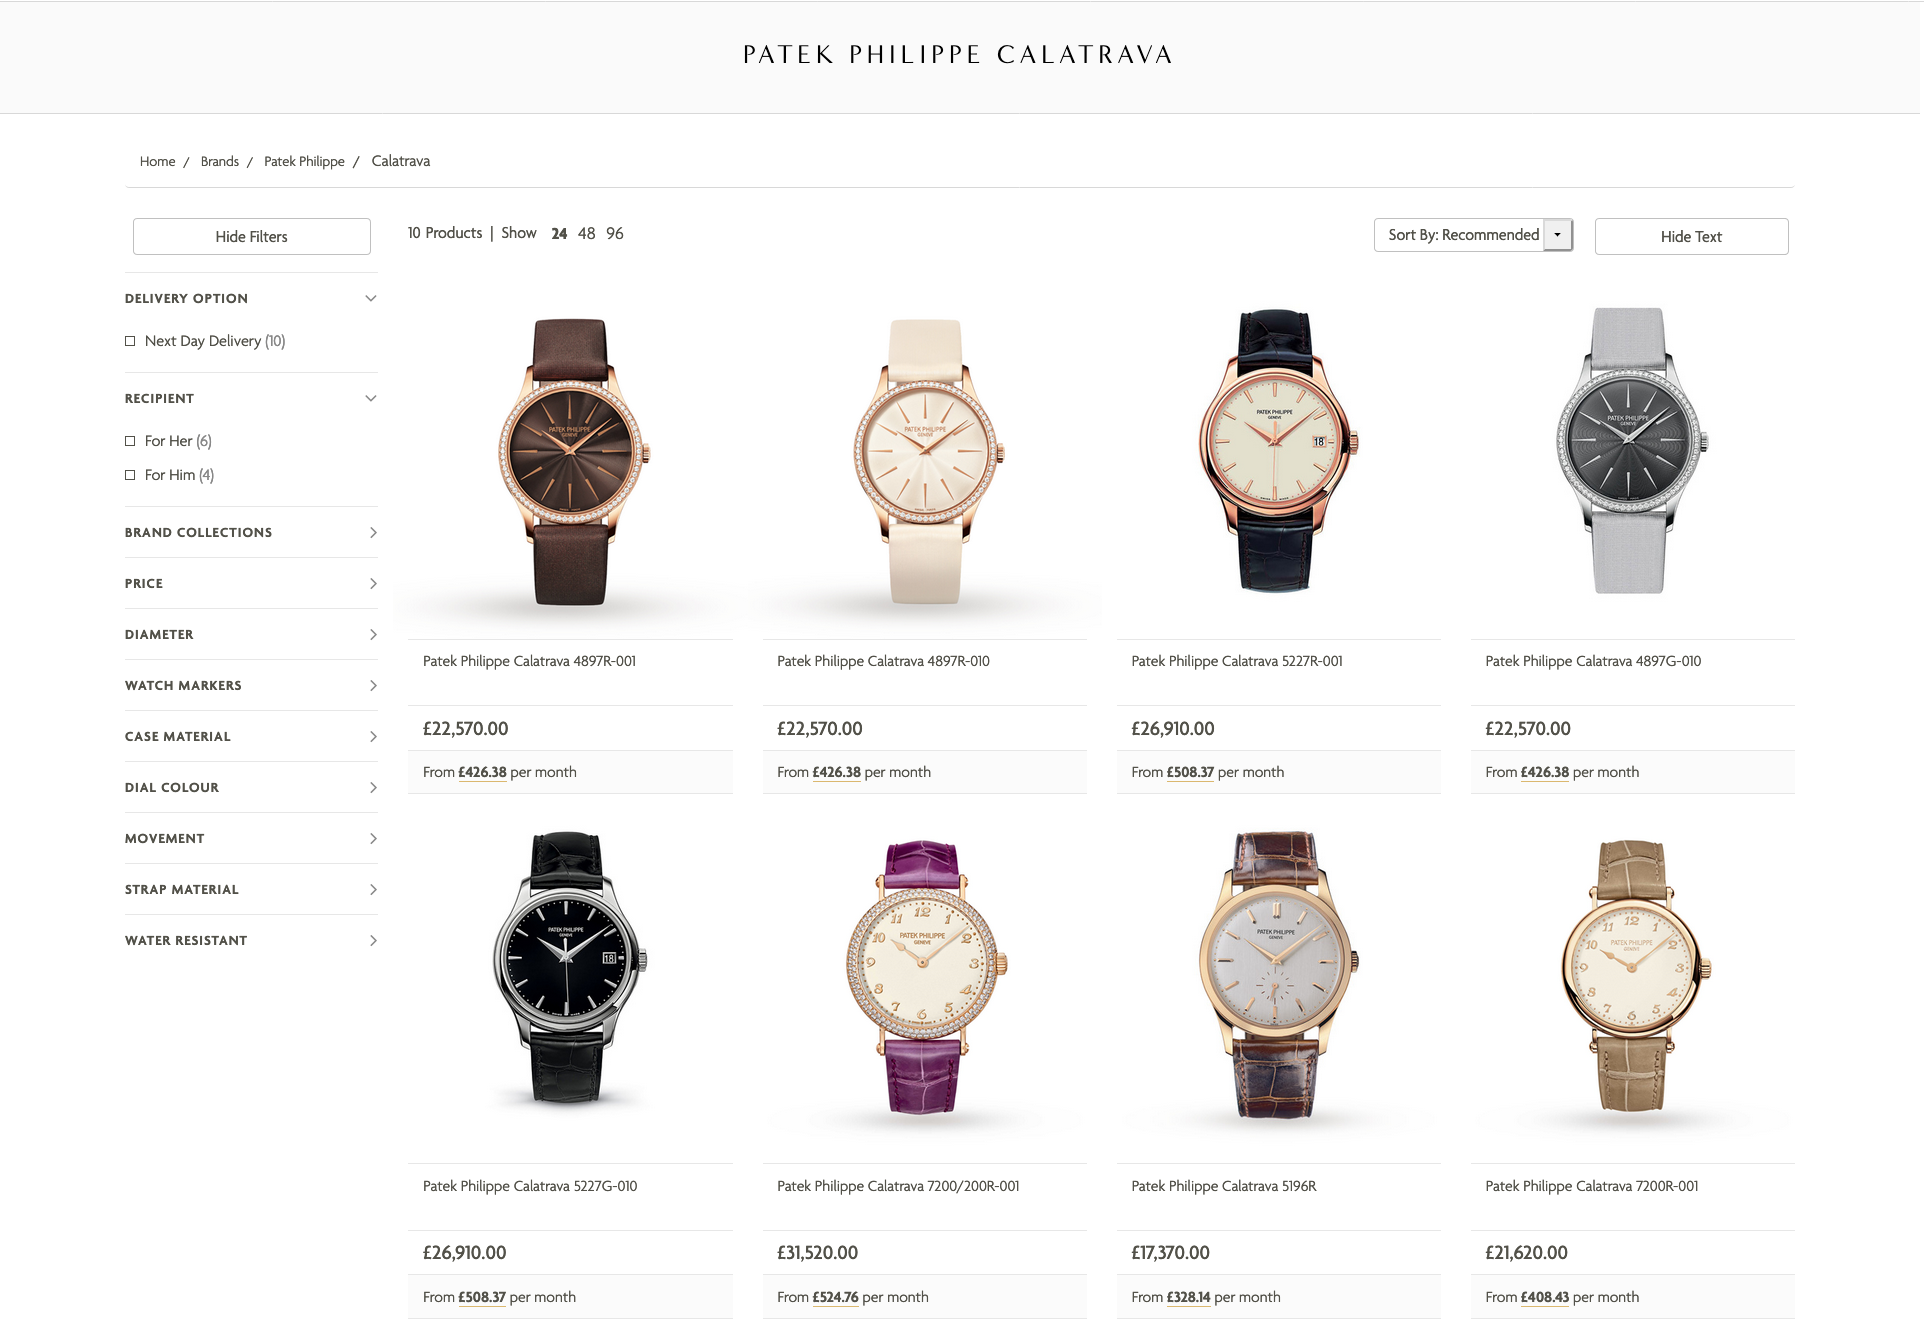 The Watches of Switzerland UK Website retailing Patek Philippe, with guidelines from the brand. - www.revolution.watch